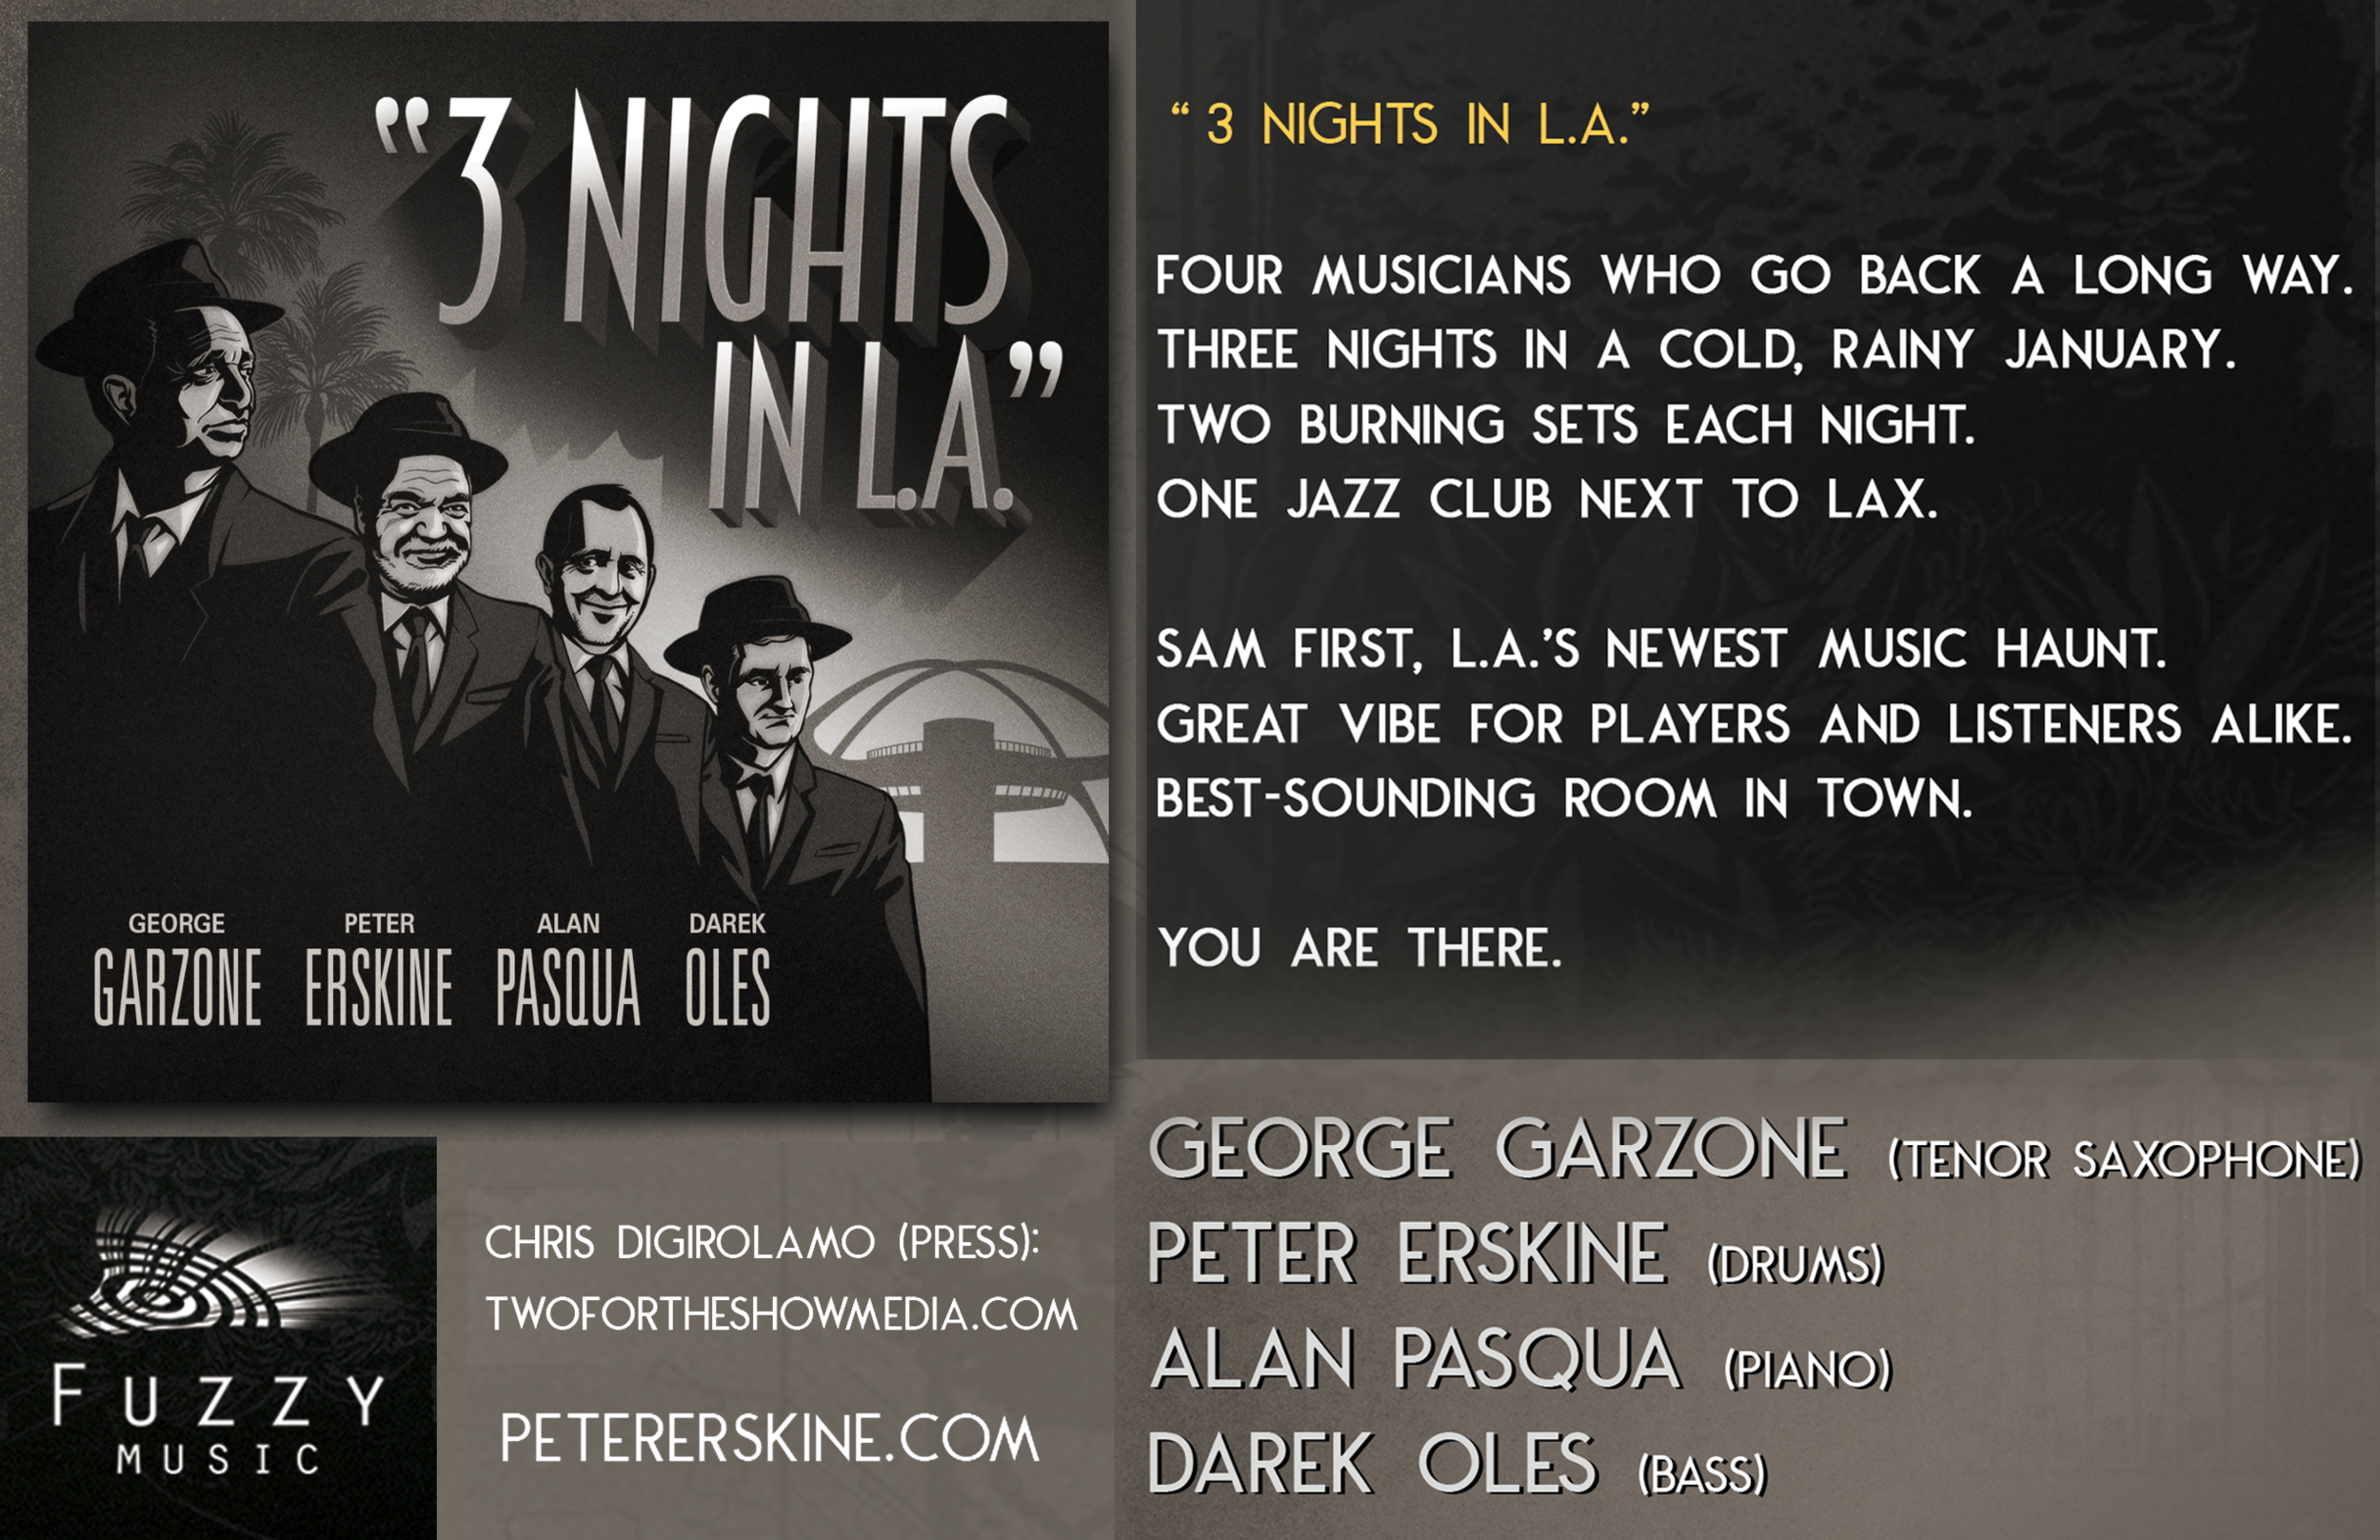 BANNER_Peter Erskine_3 Nights in LA.png